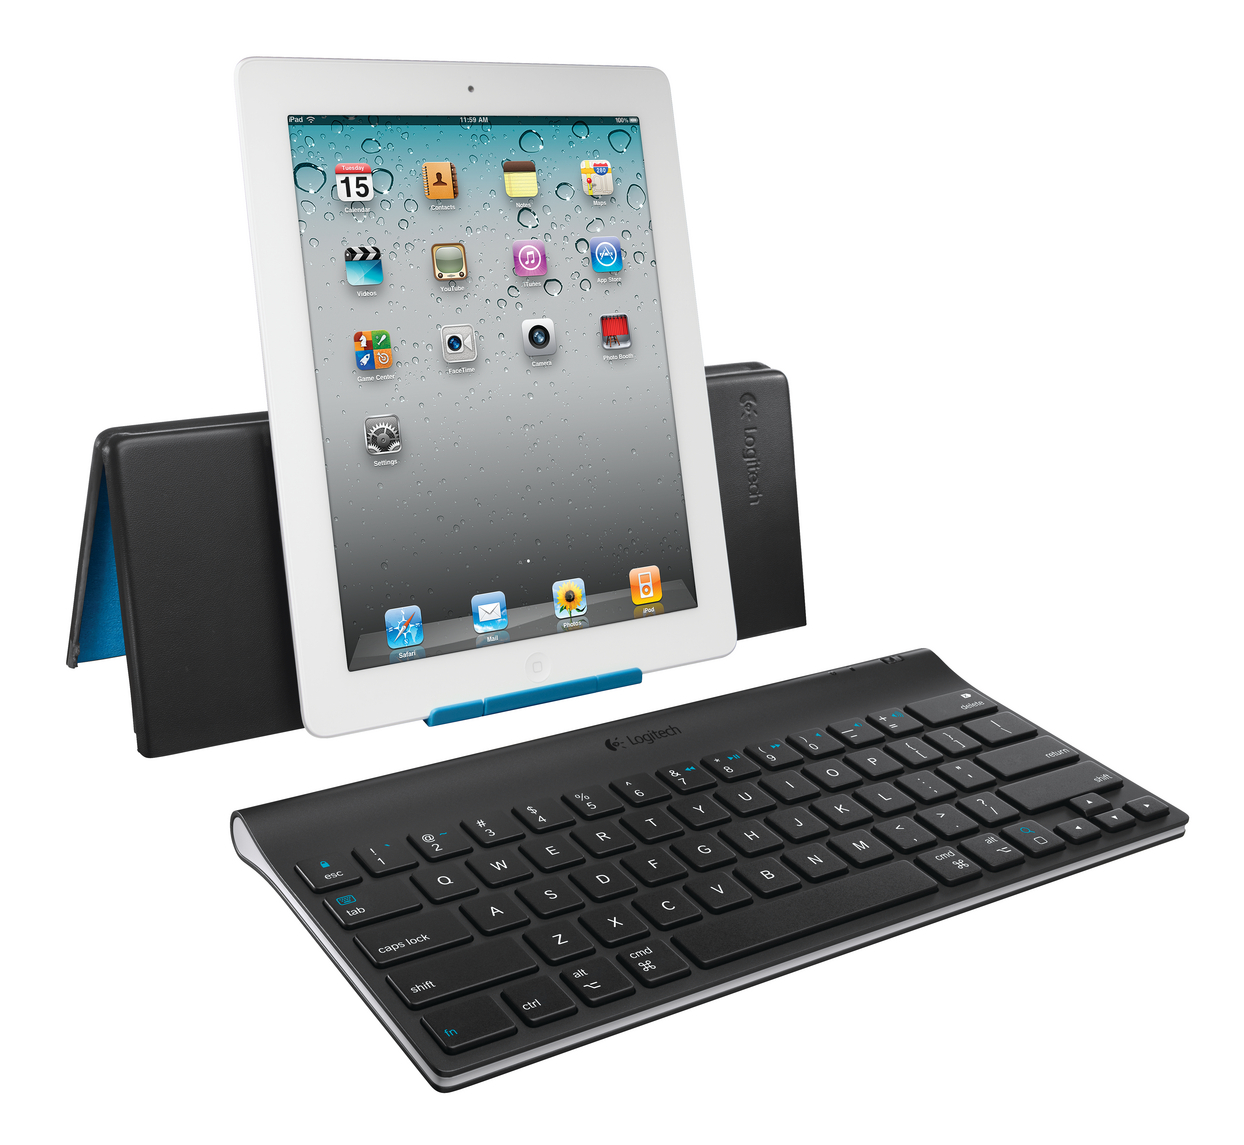 http://blog.logitech.com/wp-content/uploads/2011/05/Tablet-Keyboard_BTY2_A_Mac_72_dpi.jpg